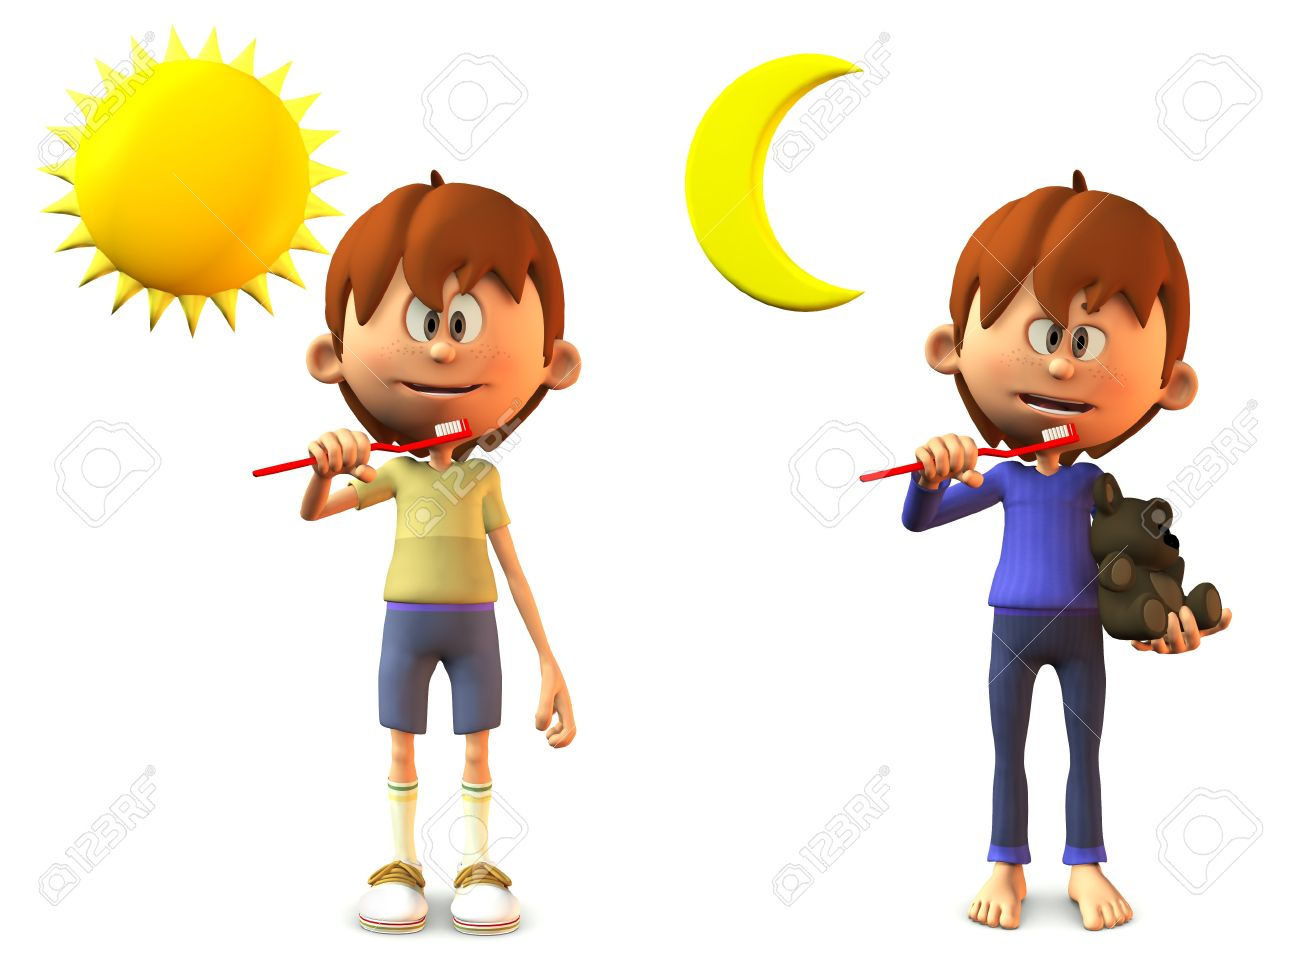 A young, smiling cartoon boy holding a toothbrush, ready to brush his teeth in the morning and in the evening  White background Stock Photo - 12683041